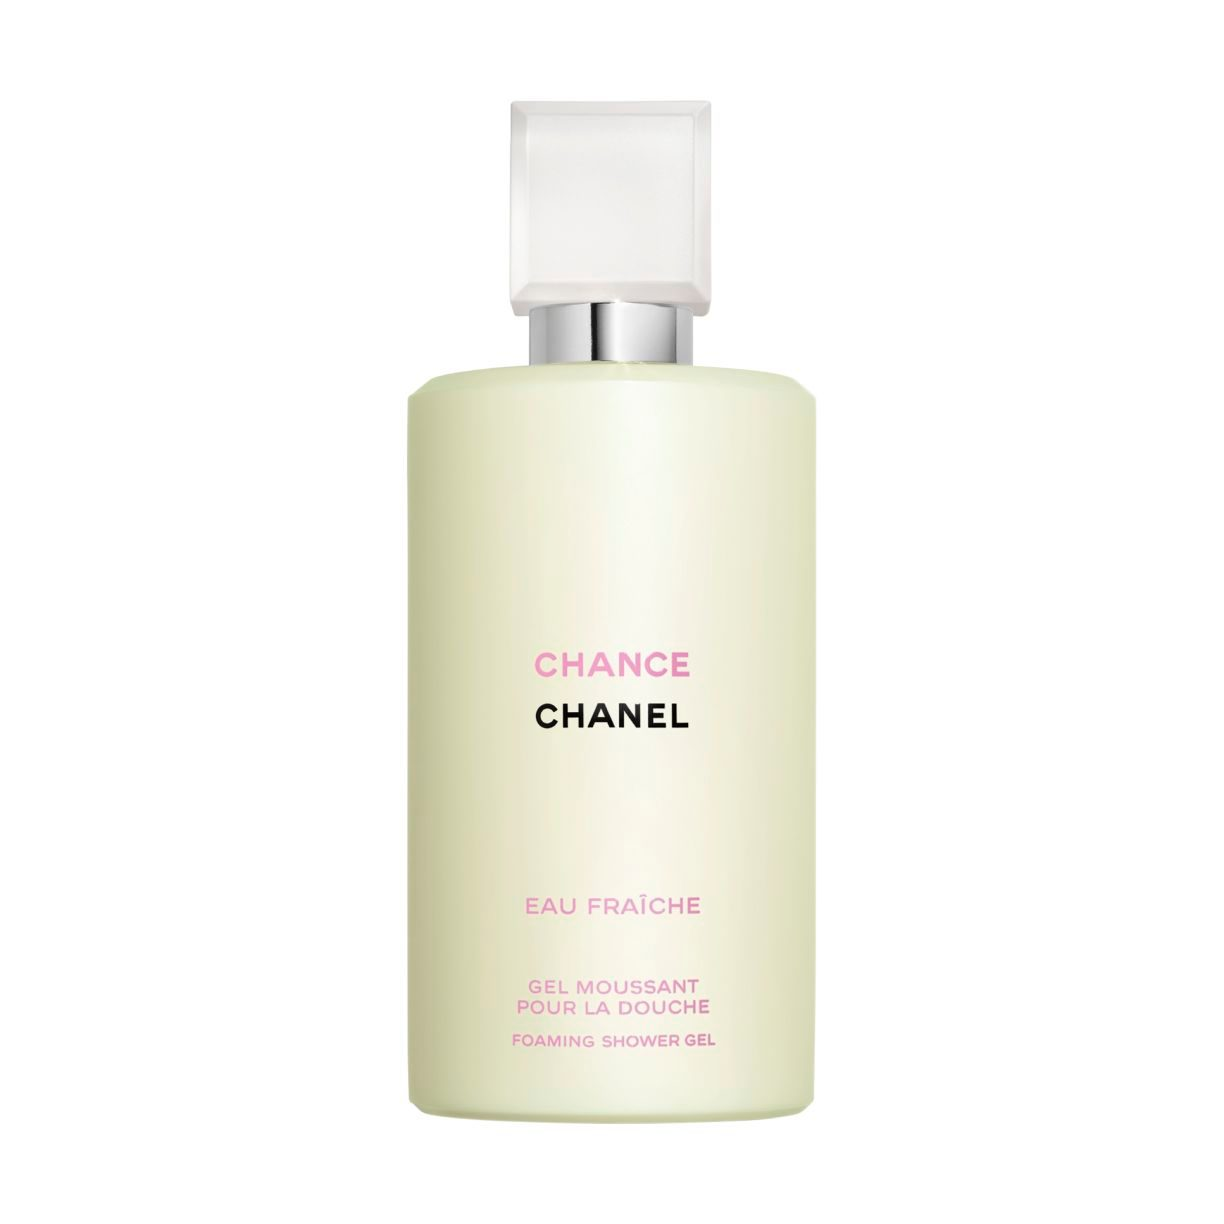 CHANCE EAU FRAÎCHE FOAMING SHOWER GEL 200ml